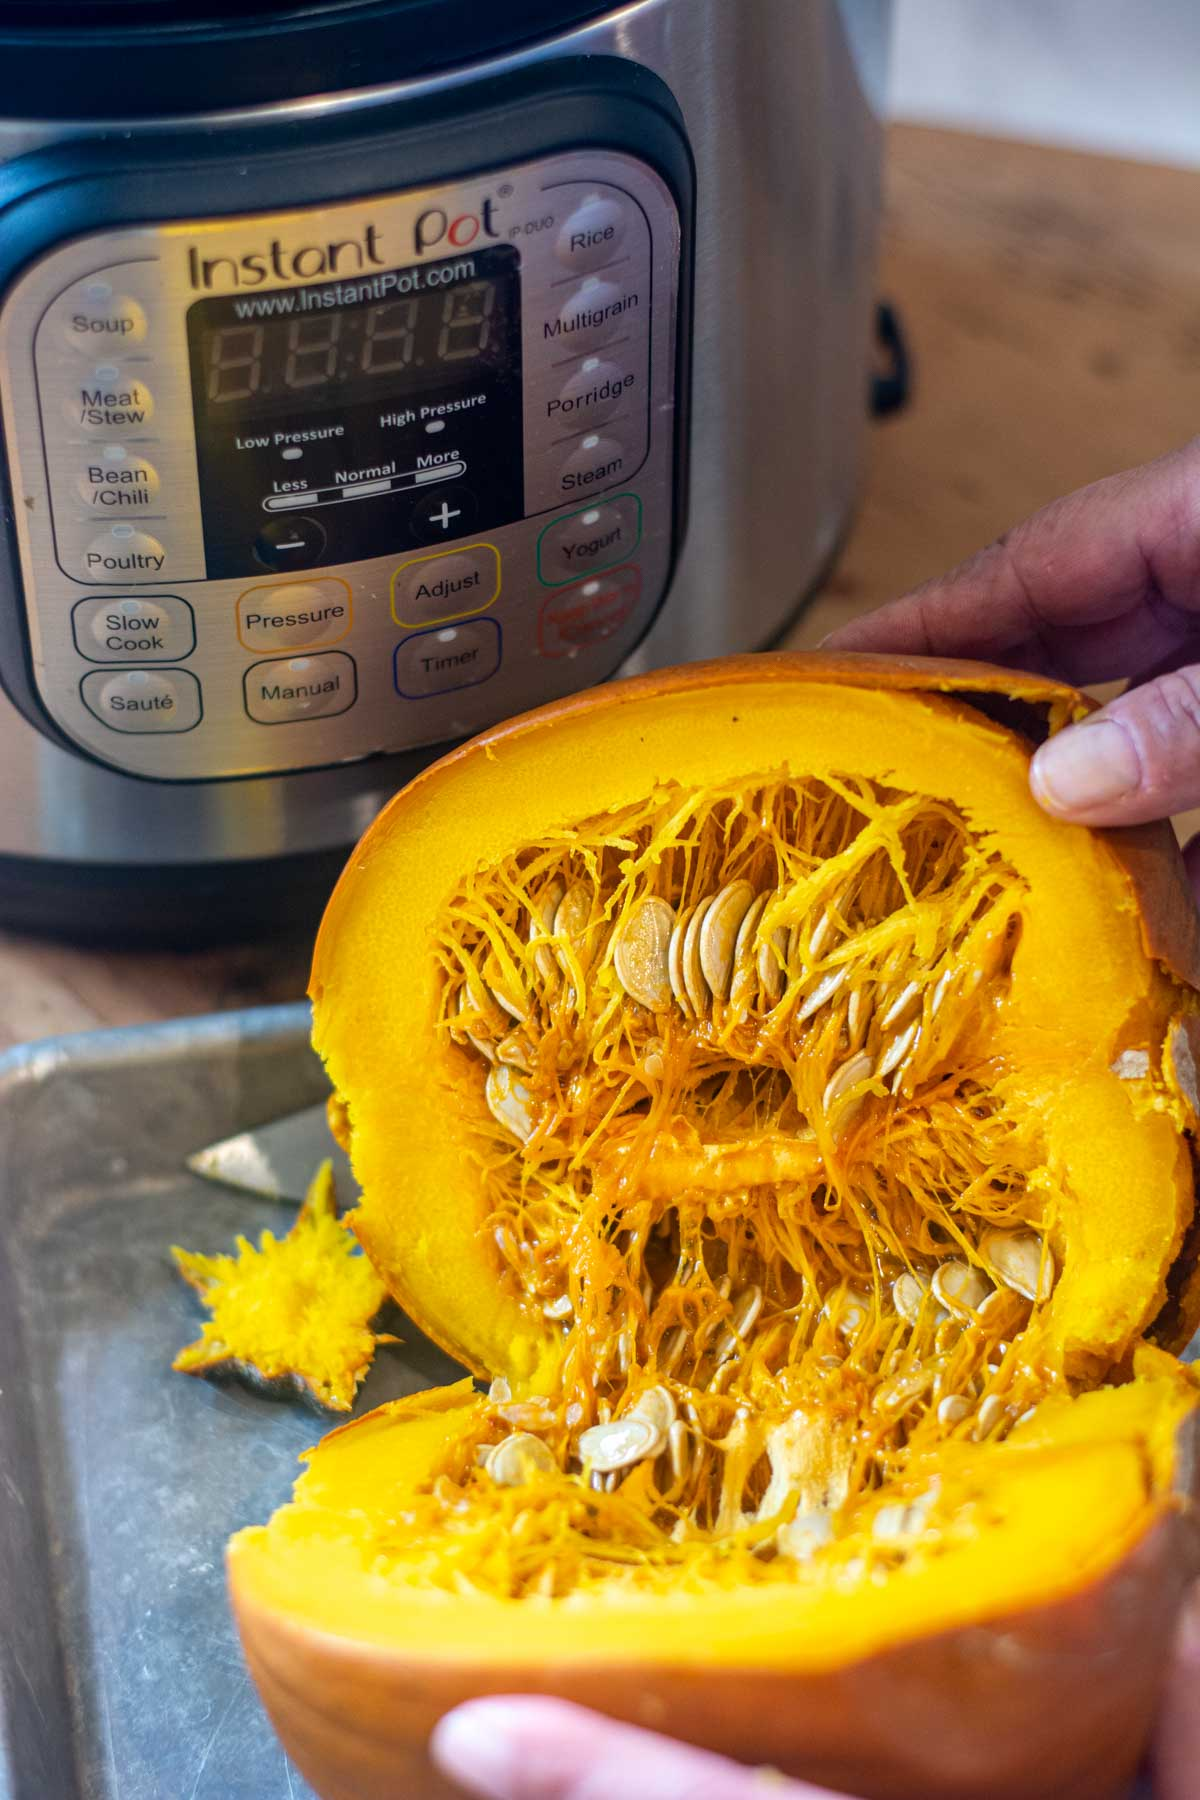 pumpkin cut in half after being in the Instant Pot.